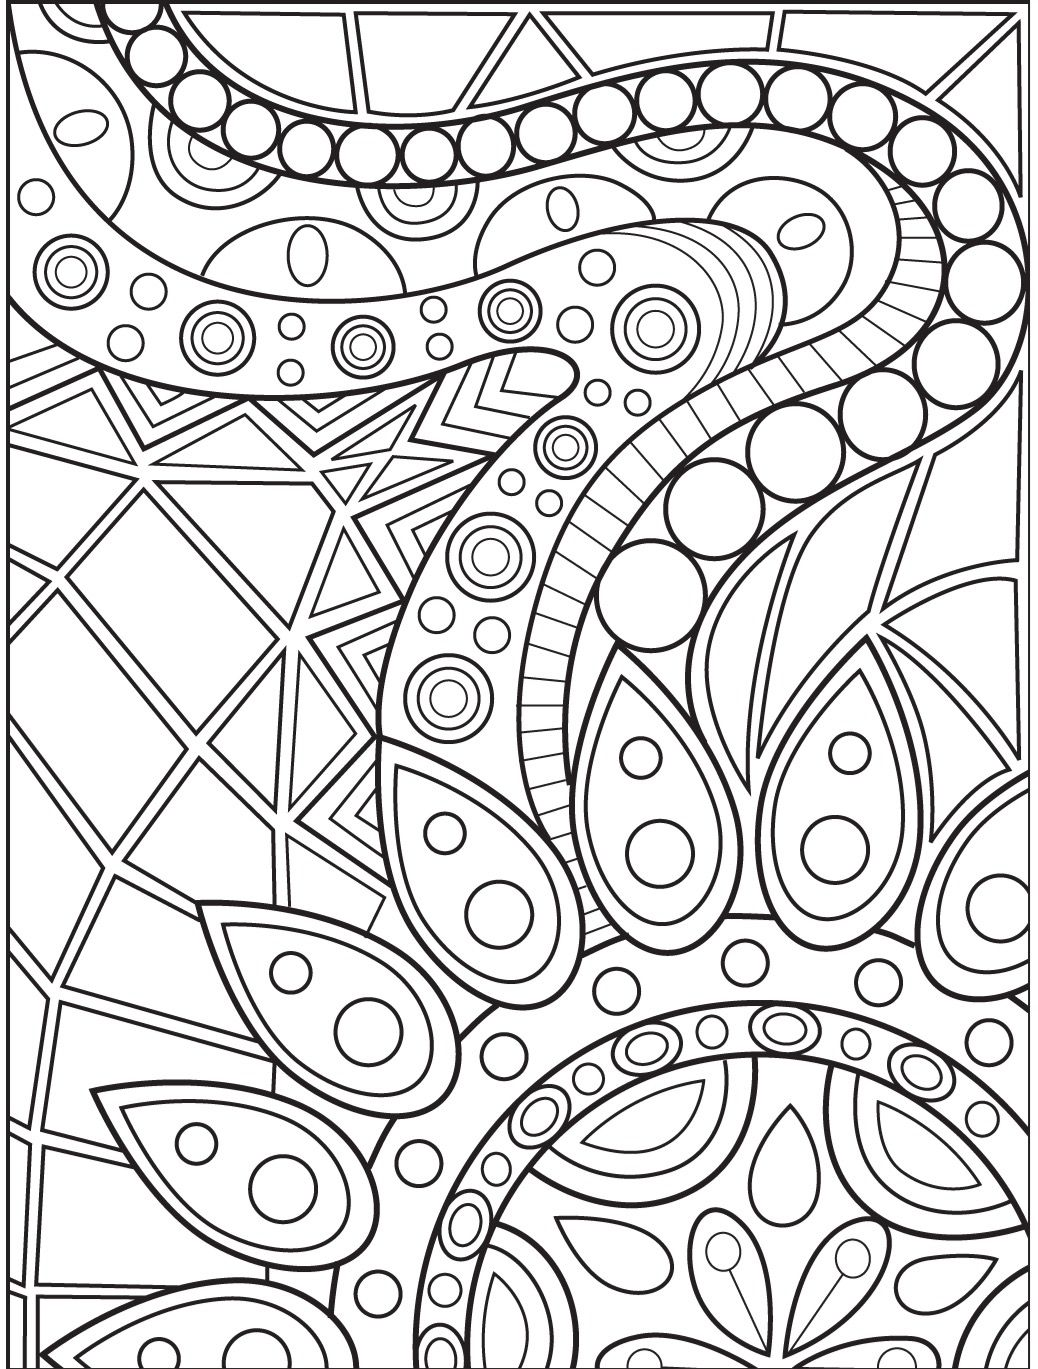 Showcase Wide Fit Silver Bing Heel Sandals Abstract Coloring Pages Mandala Coloring Pages Geometric Coloring Pages